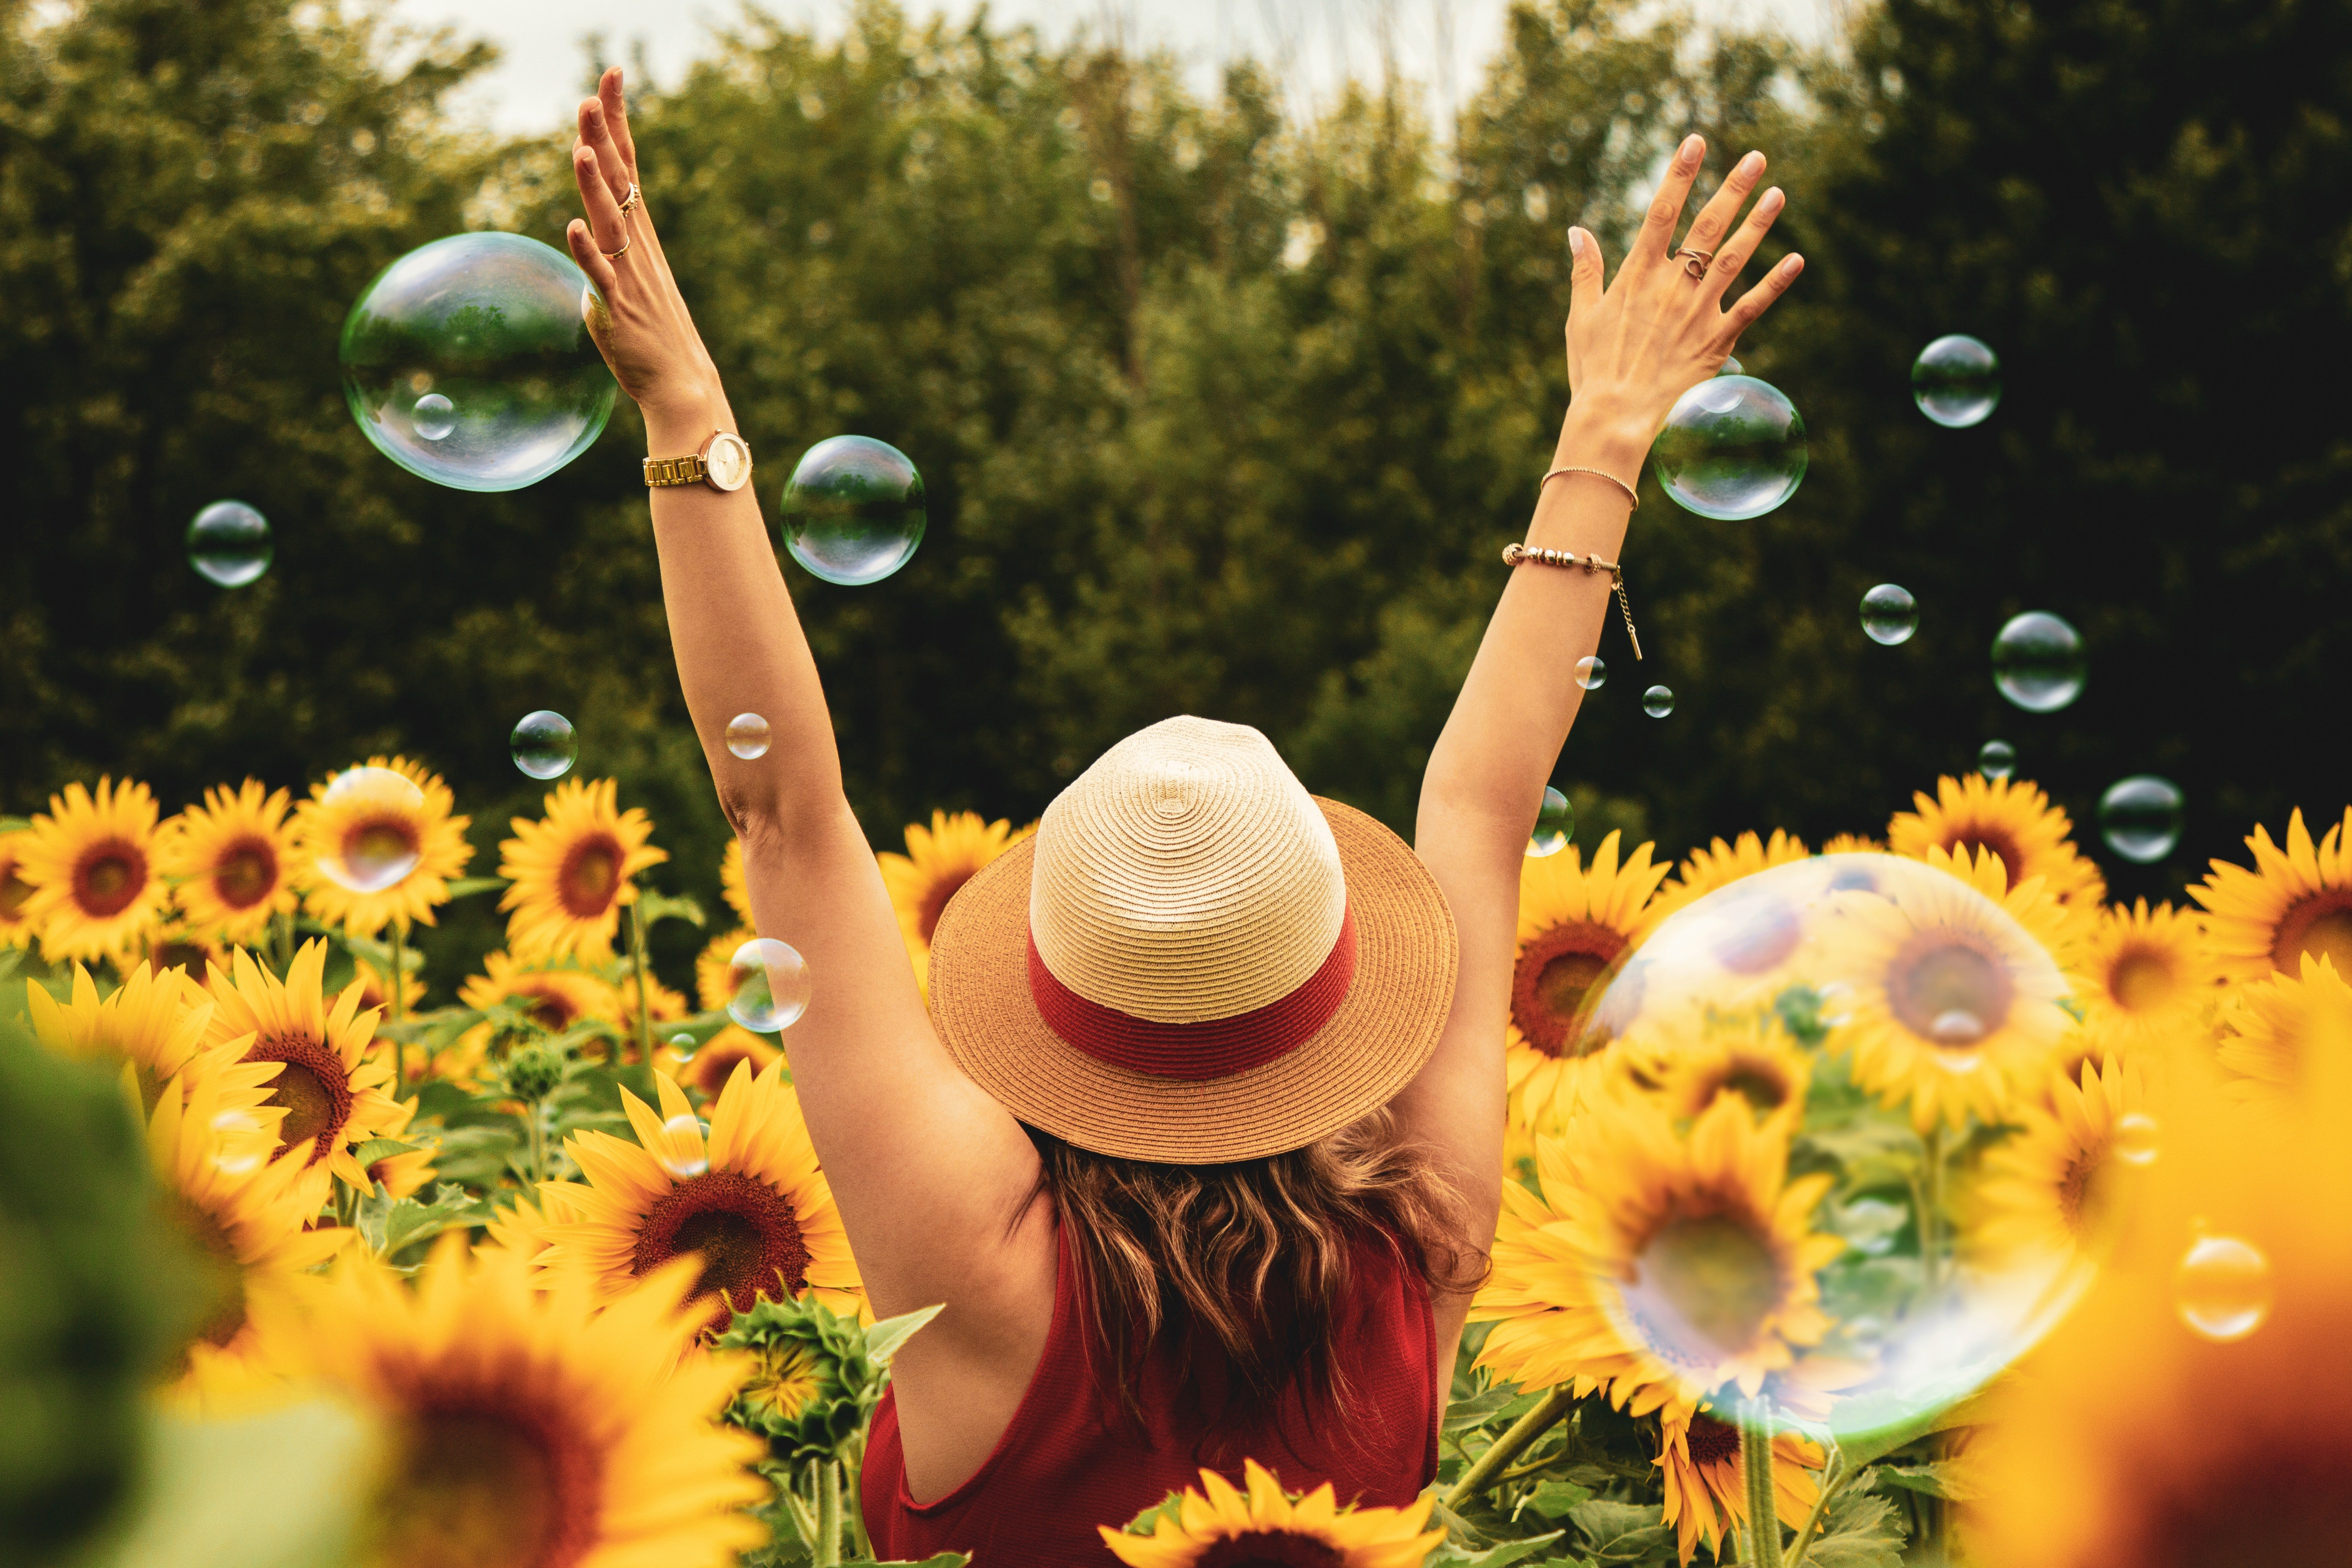 The 8 Best Tips to Live a More Joyful Life